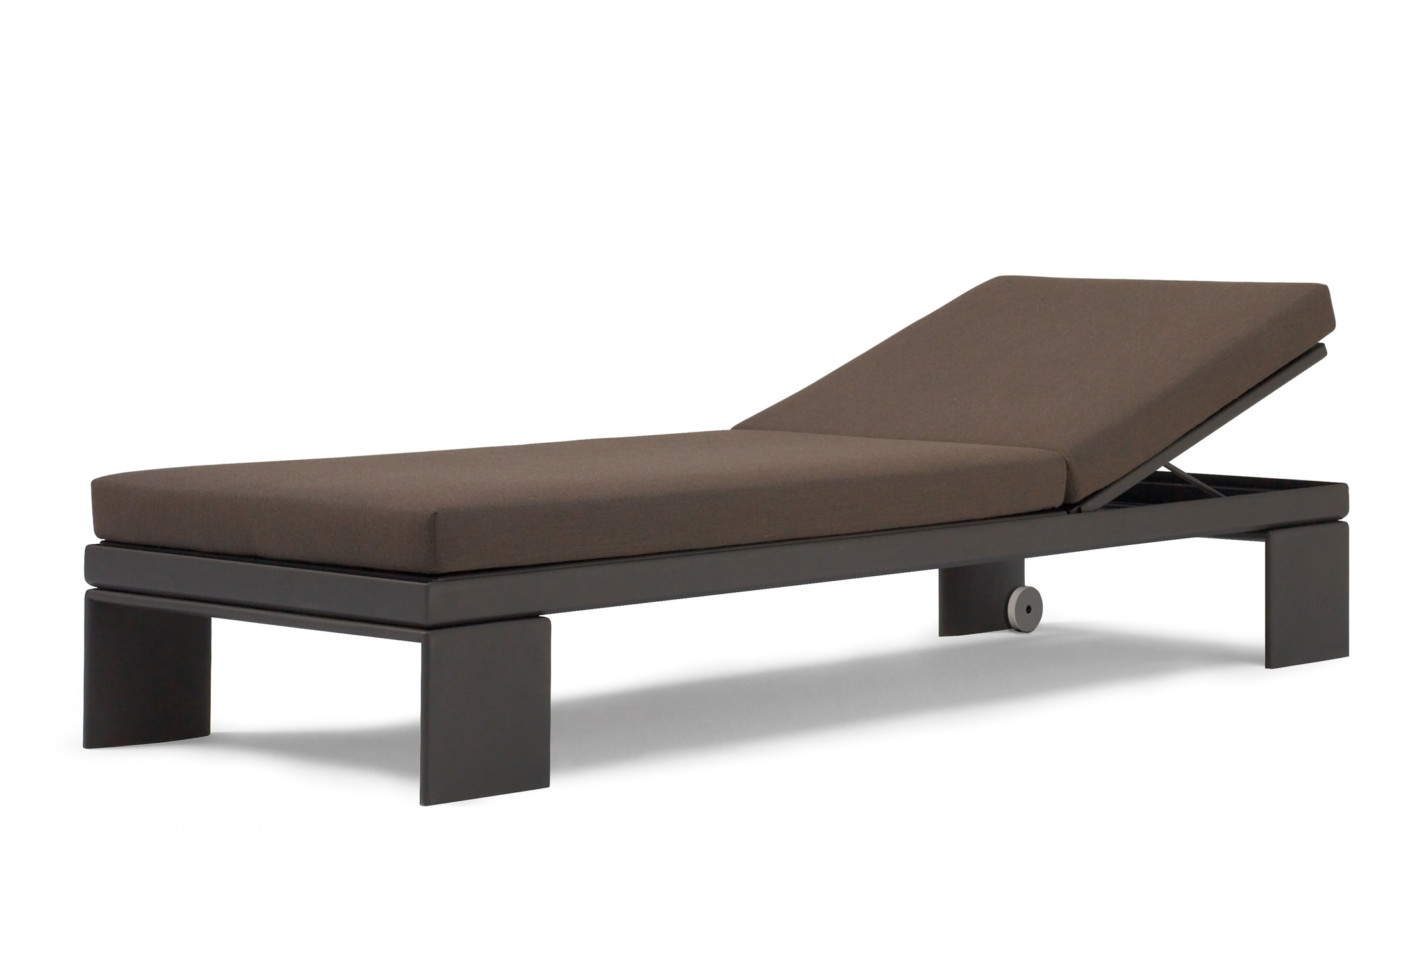 Landscape alu chaise longue by andreu world stylepark for Chaise longue en toile pliante